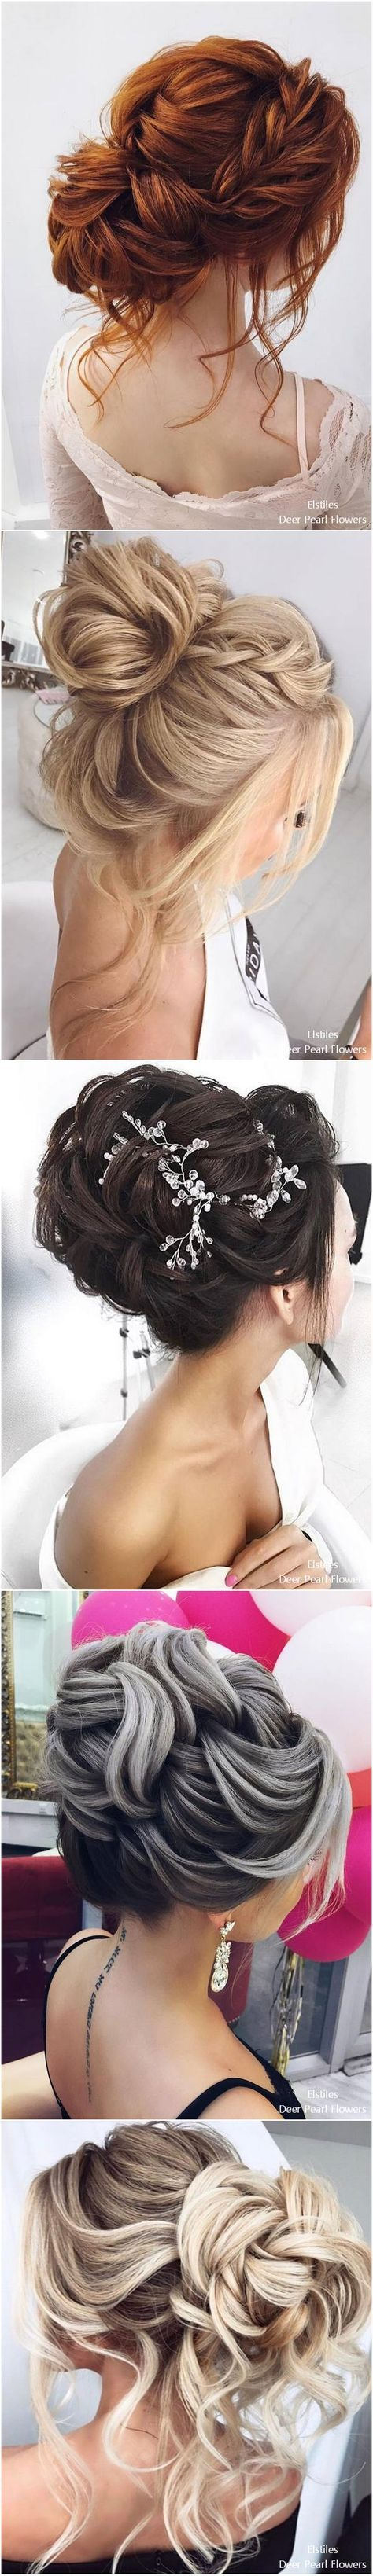 Wedding Hairstyles, Bride Hair, Wedding Updo,Wedding planning tips, DIY Bride, DIY Wedding Decorations, DIY Wedding Decor, DIY Wedding, DIY Crafts - Brandi's Bride Tribe https://www.facebook.com/groups/BrandisBrideTribe/